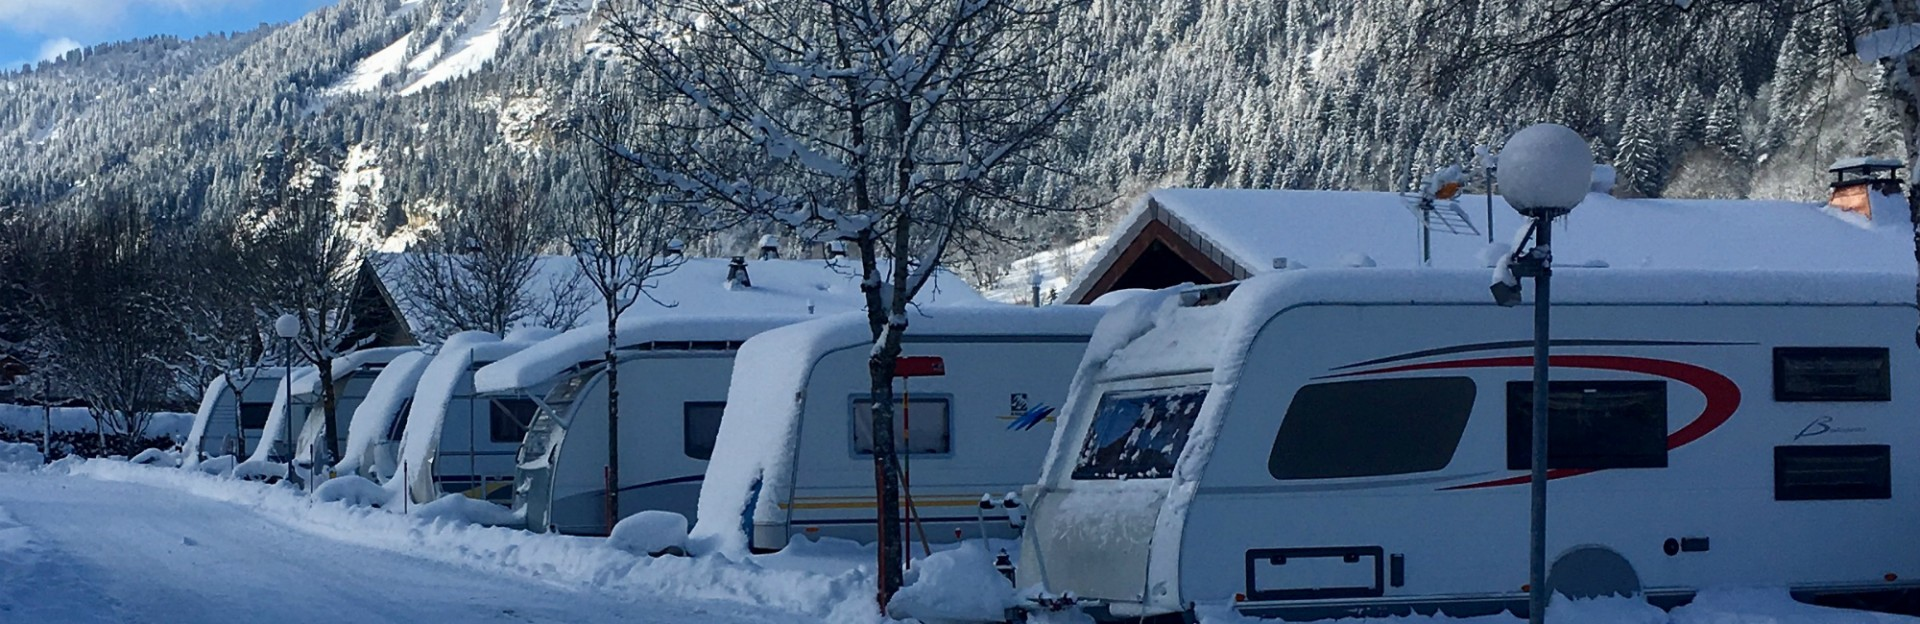 campsite in winter l'oustalet | 4 stars with swimming pool | mountain in winter| Châtel | Haute Savoie